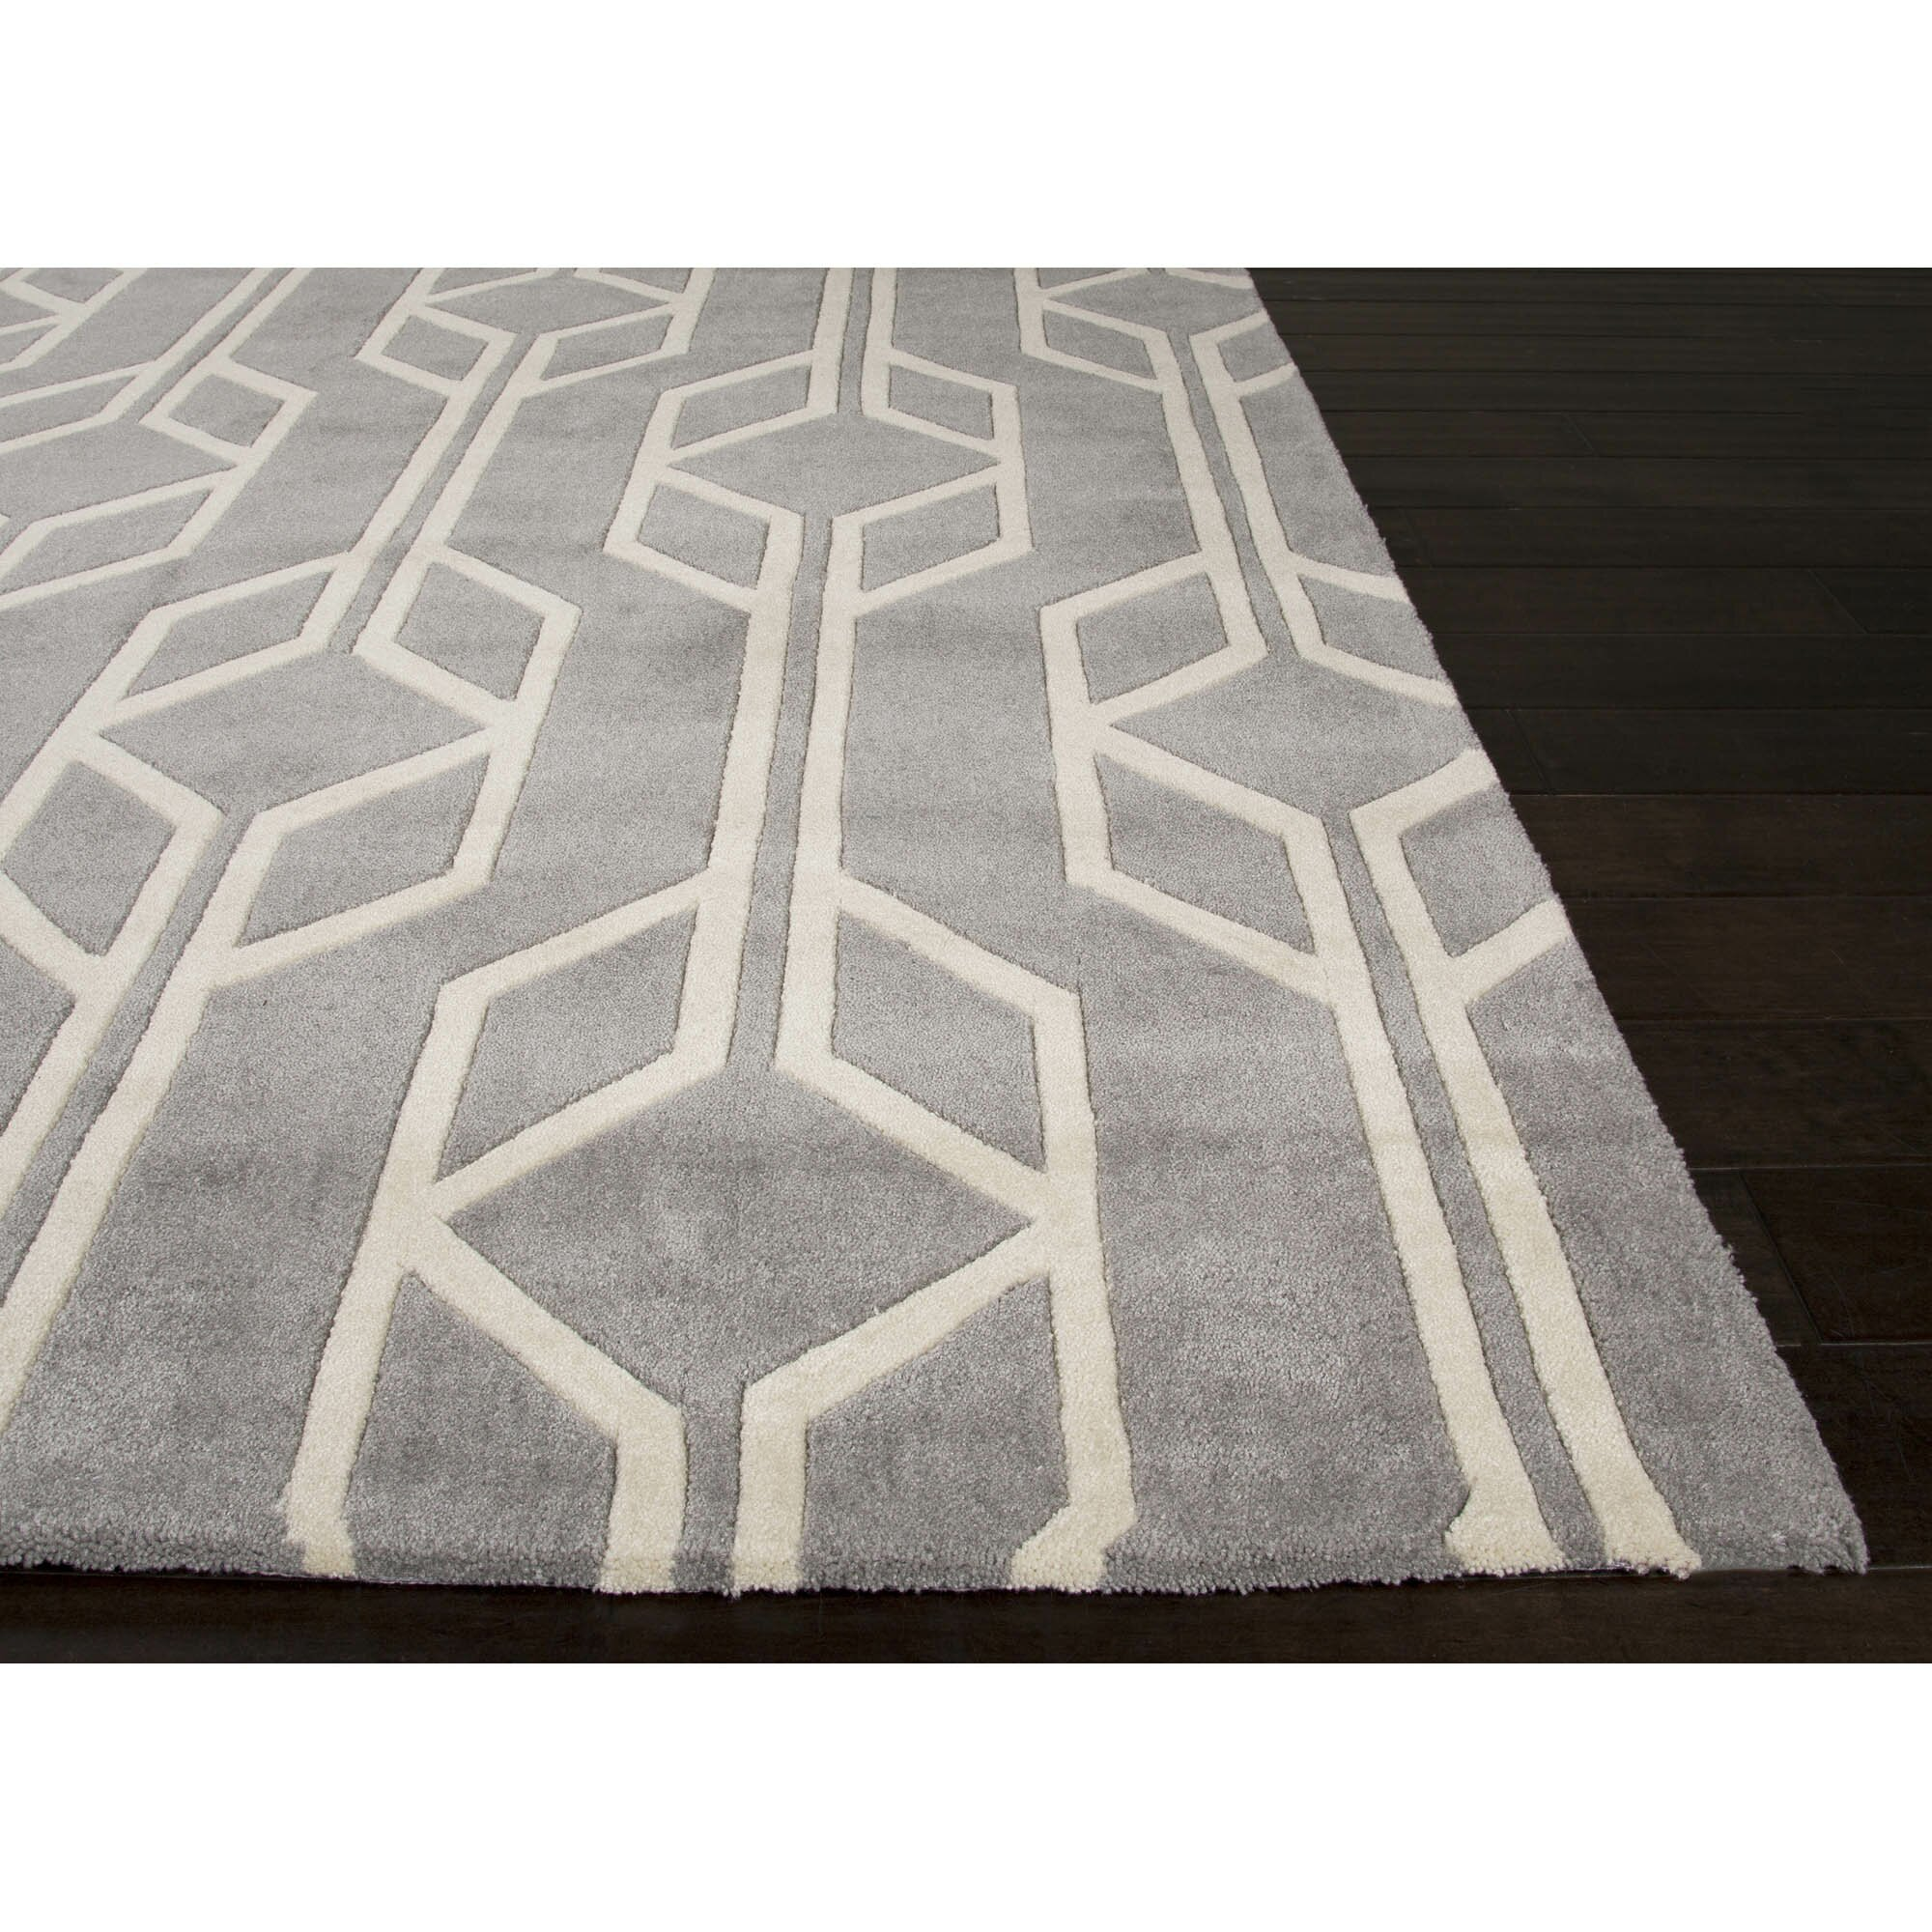 Jaipurliving Fusion Polyester Hand Tufted Gray Area Rug